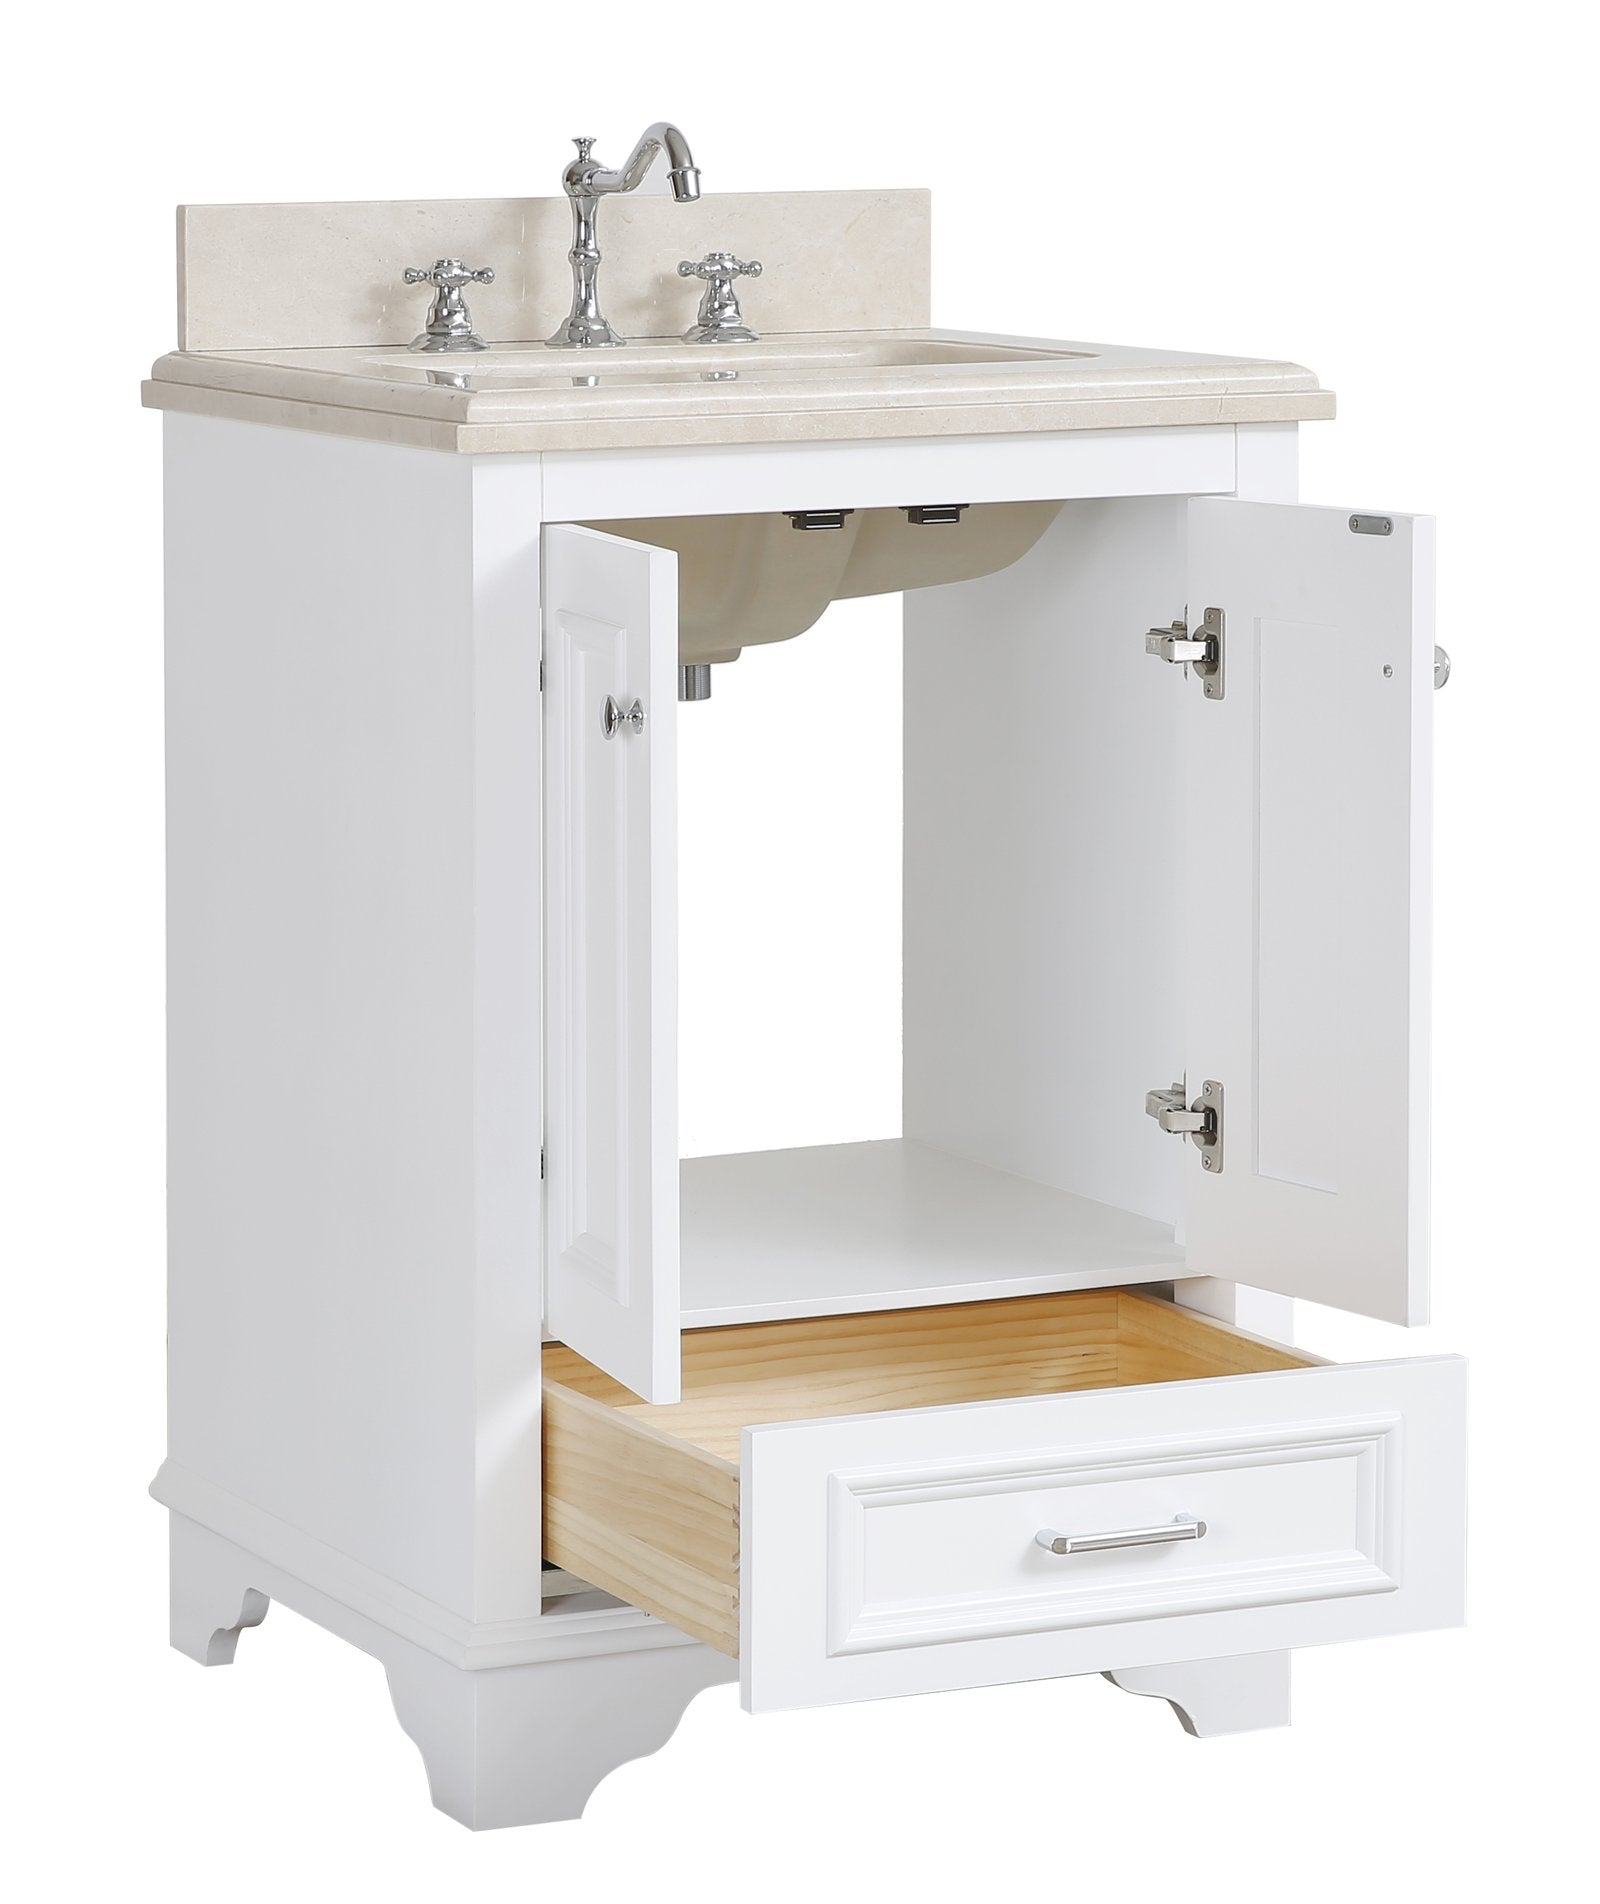 Nantucket 24 Traditional Bathroom Vanity With Crema Marfil Top Kitchenbathcollection